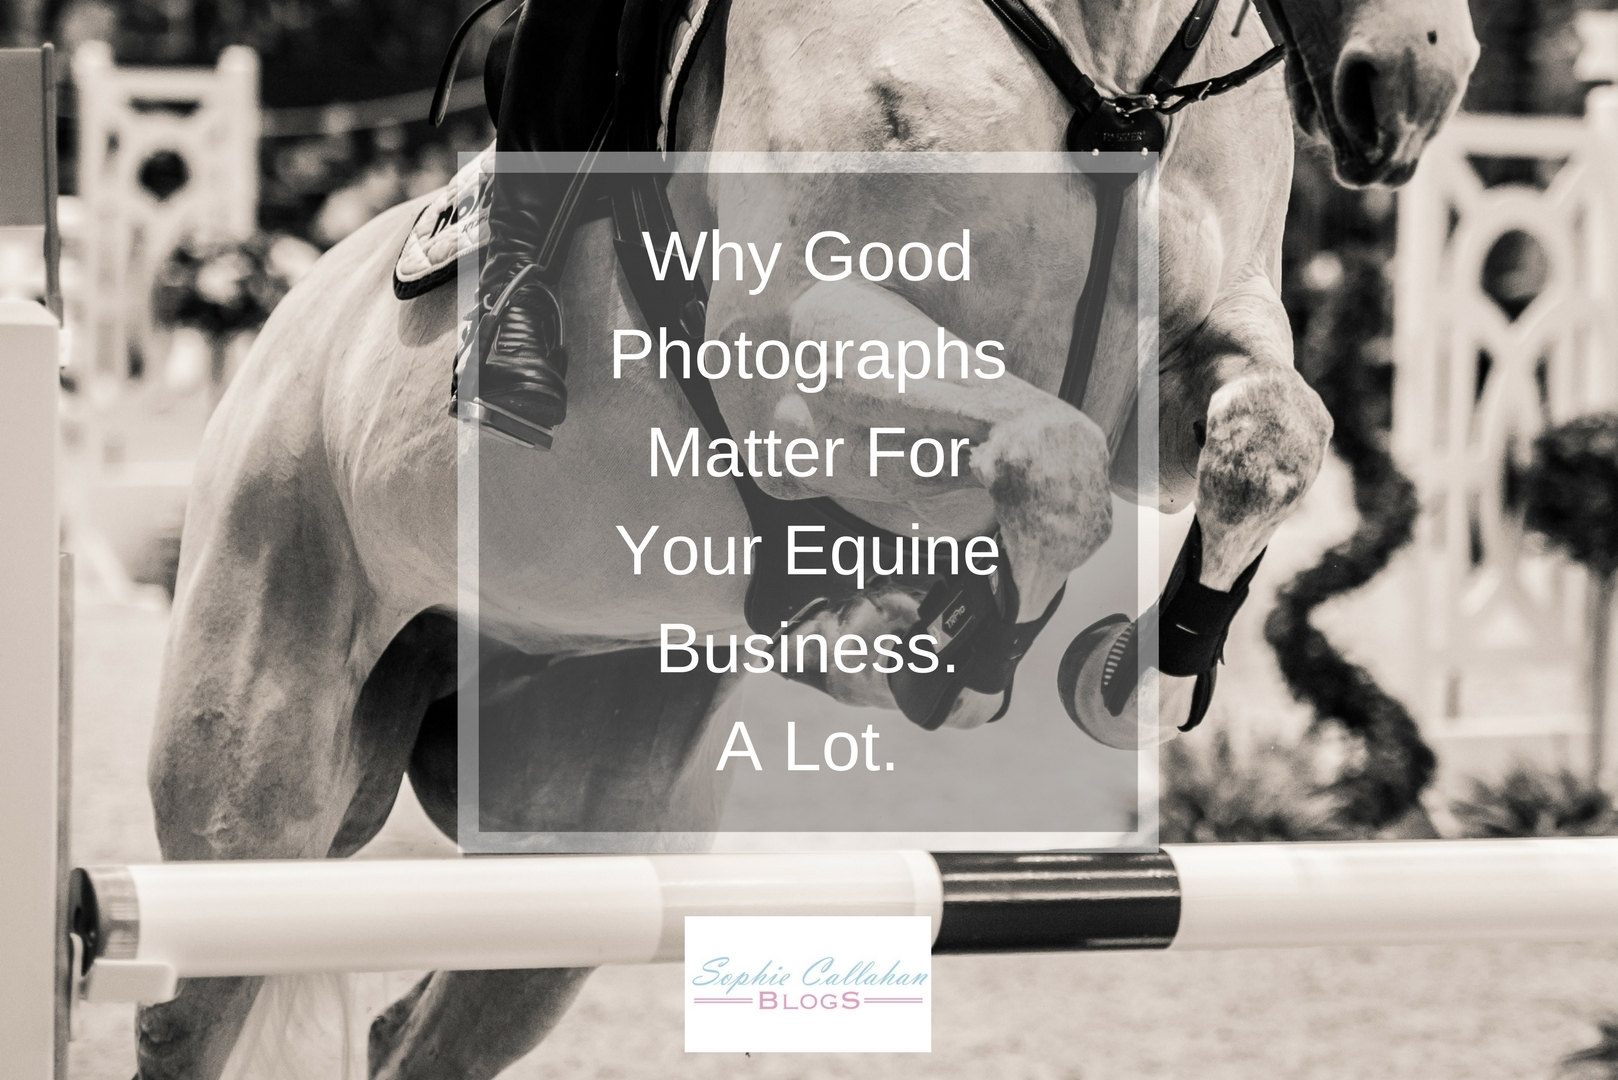 Why Good Photographs Matter For Your Equine Business, with Rhea Freeman - Equine Photographer and Country Lifestyle Blogger I via sophiecallahanblog.com I #lifestyleblogger #photography #countrylife